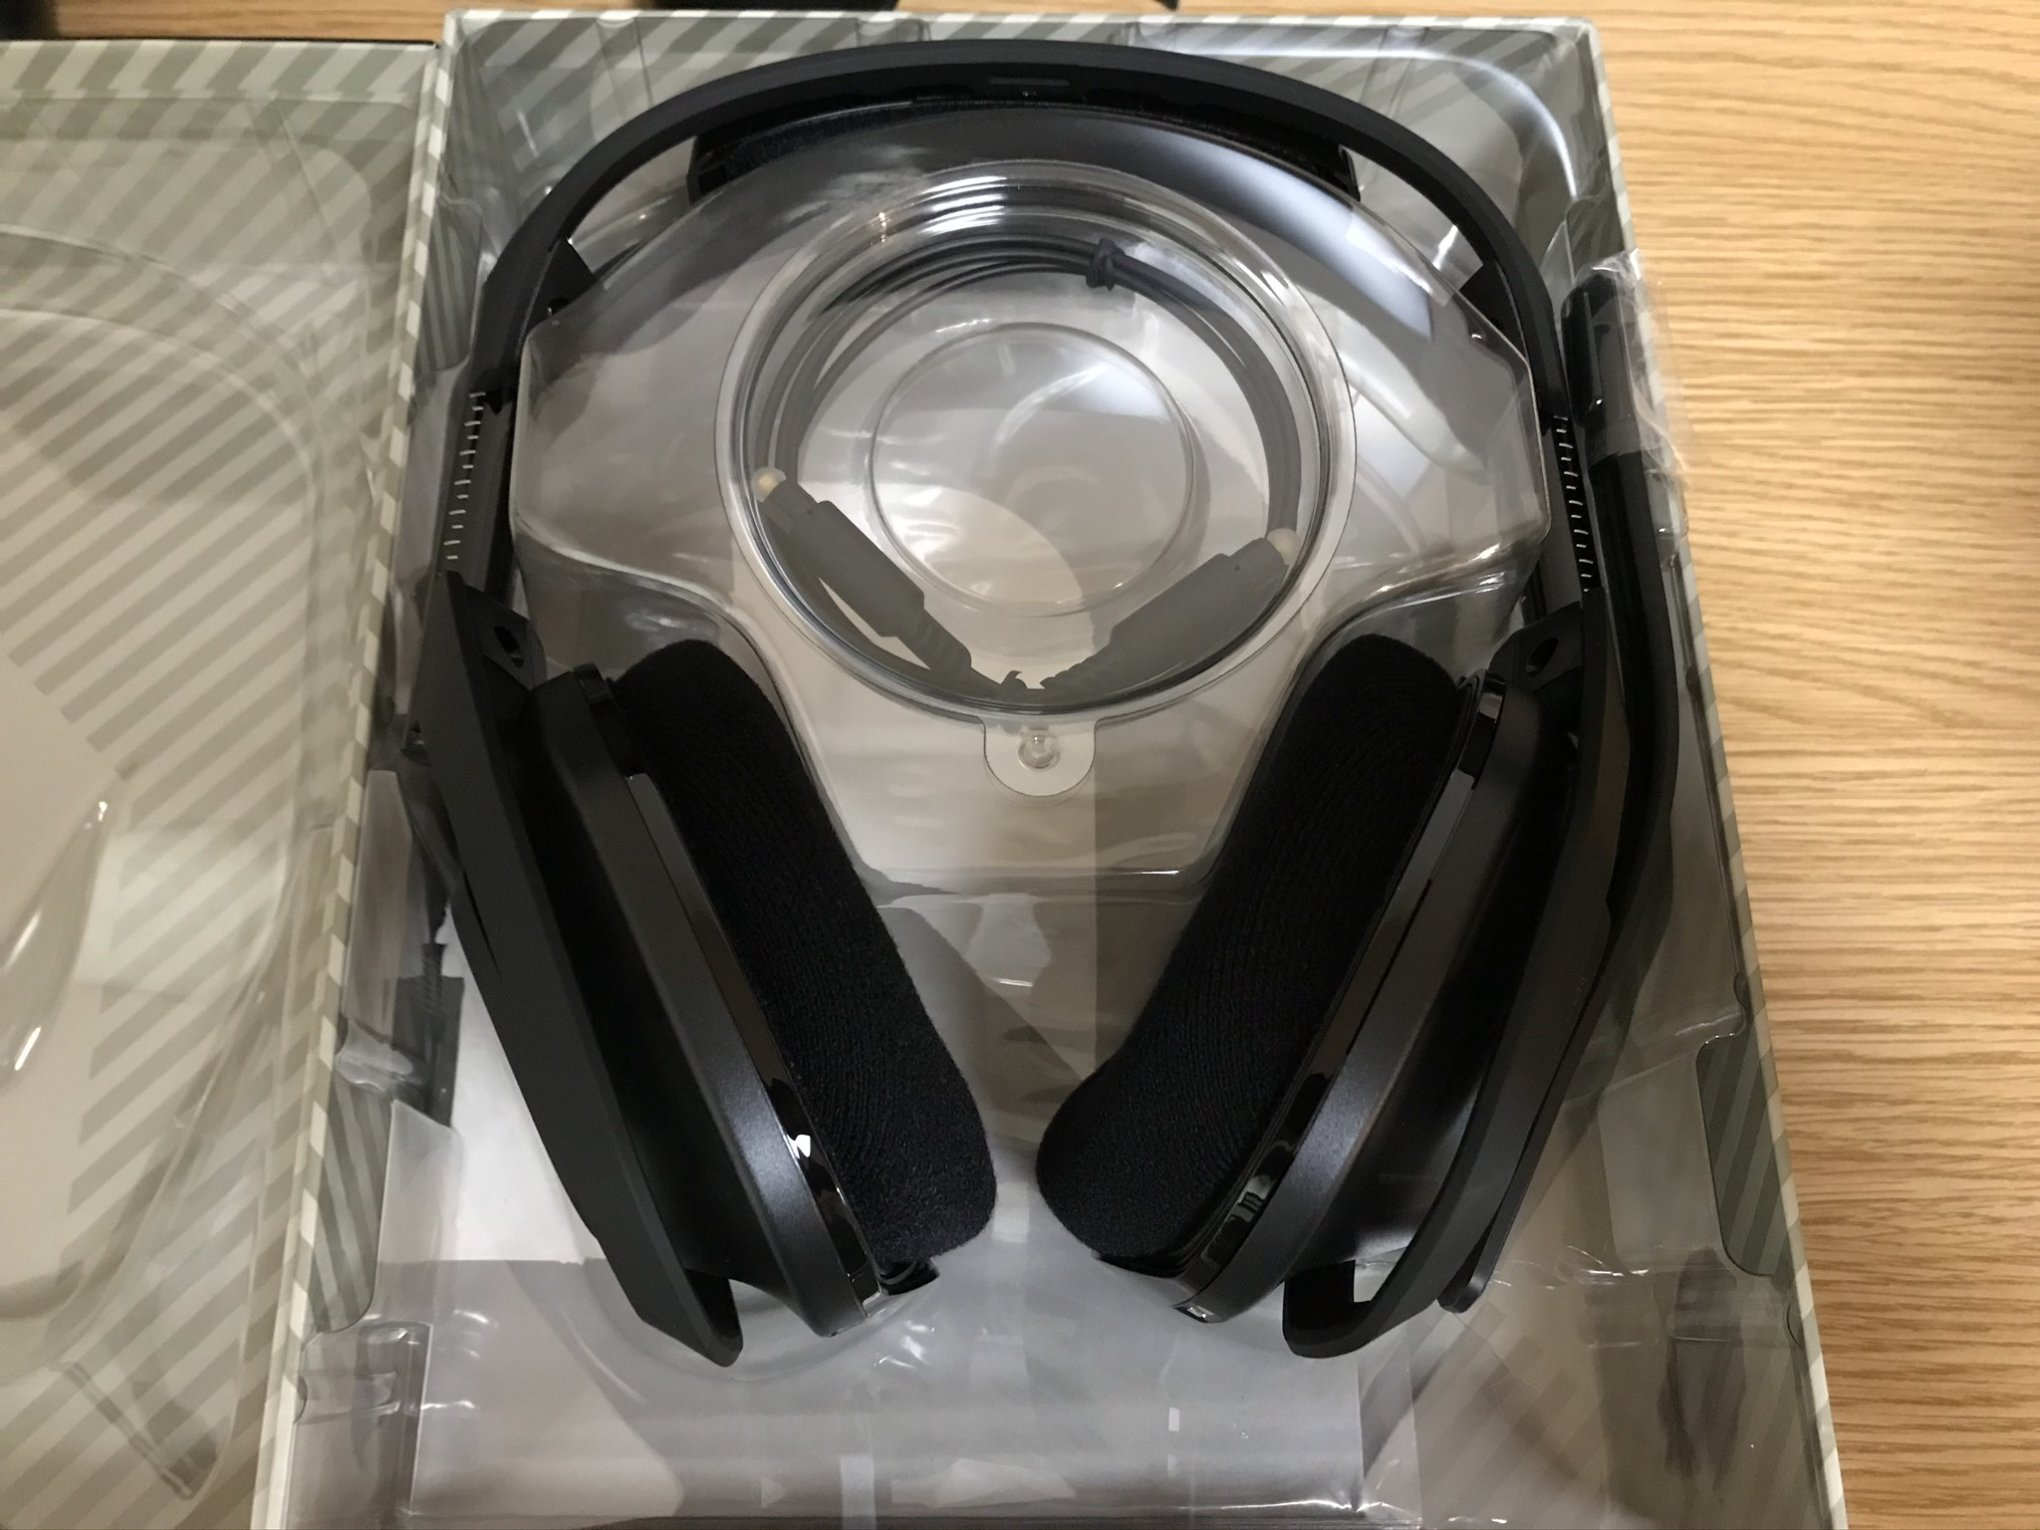 ASTRO A50 WIRELESS + BASE STATION開封